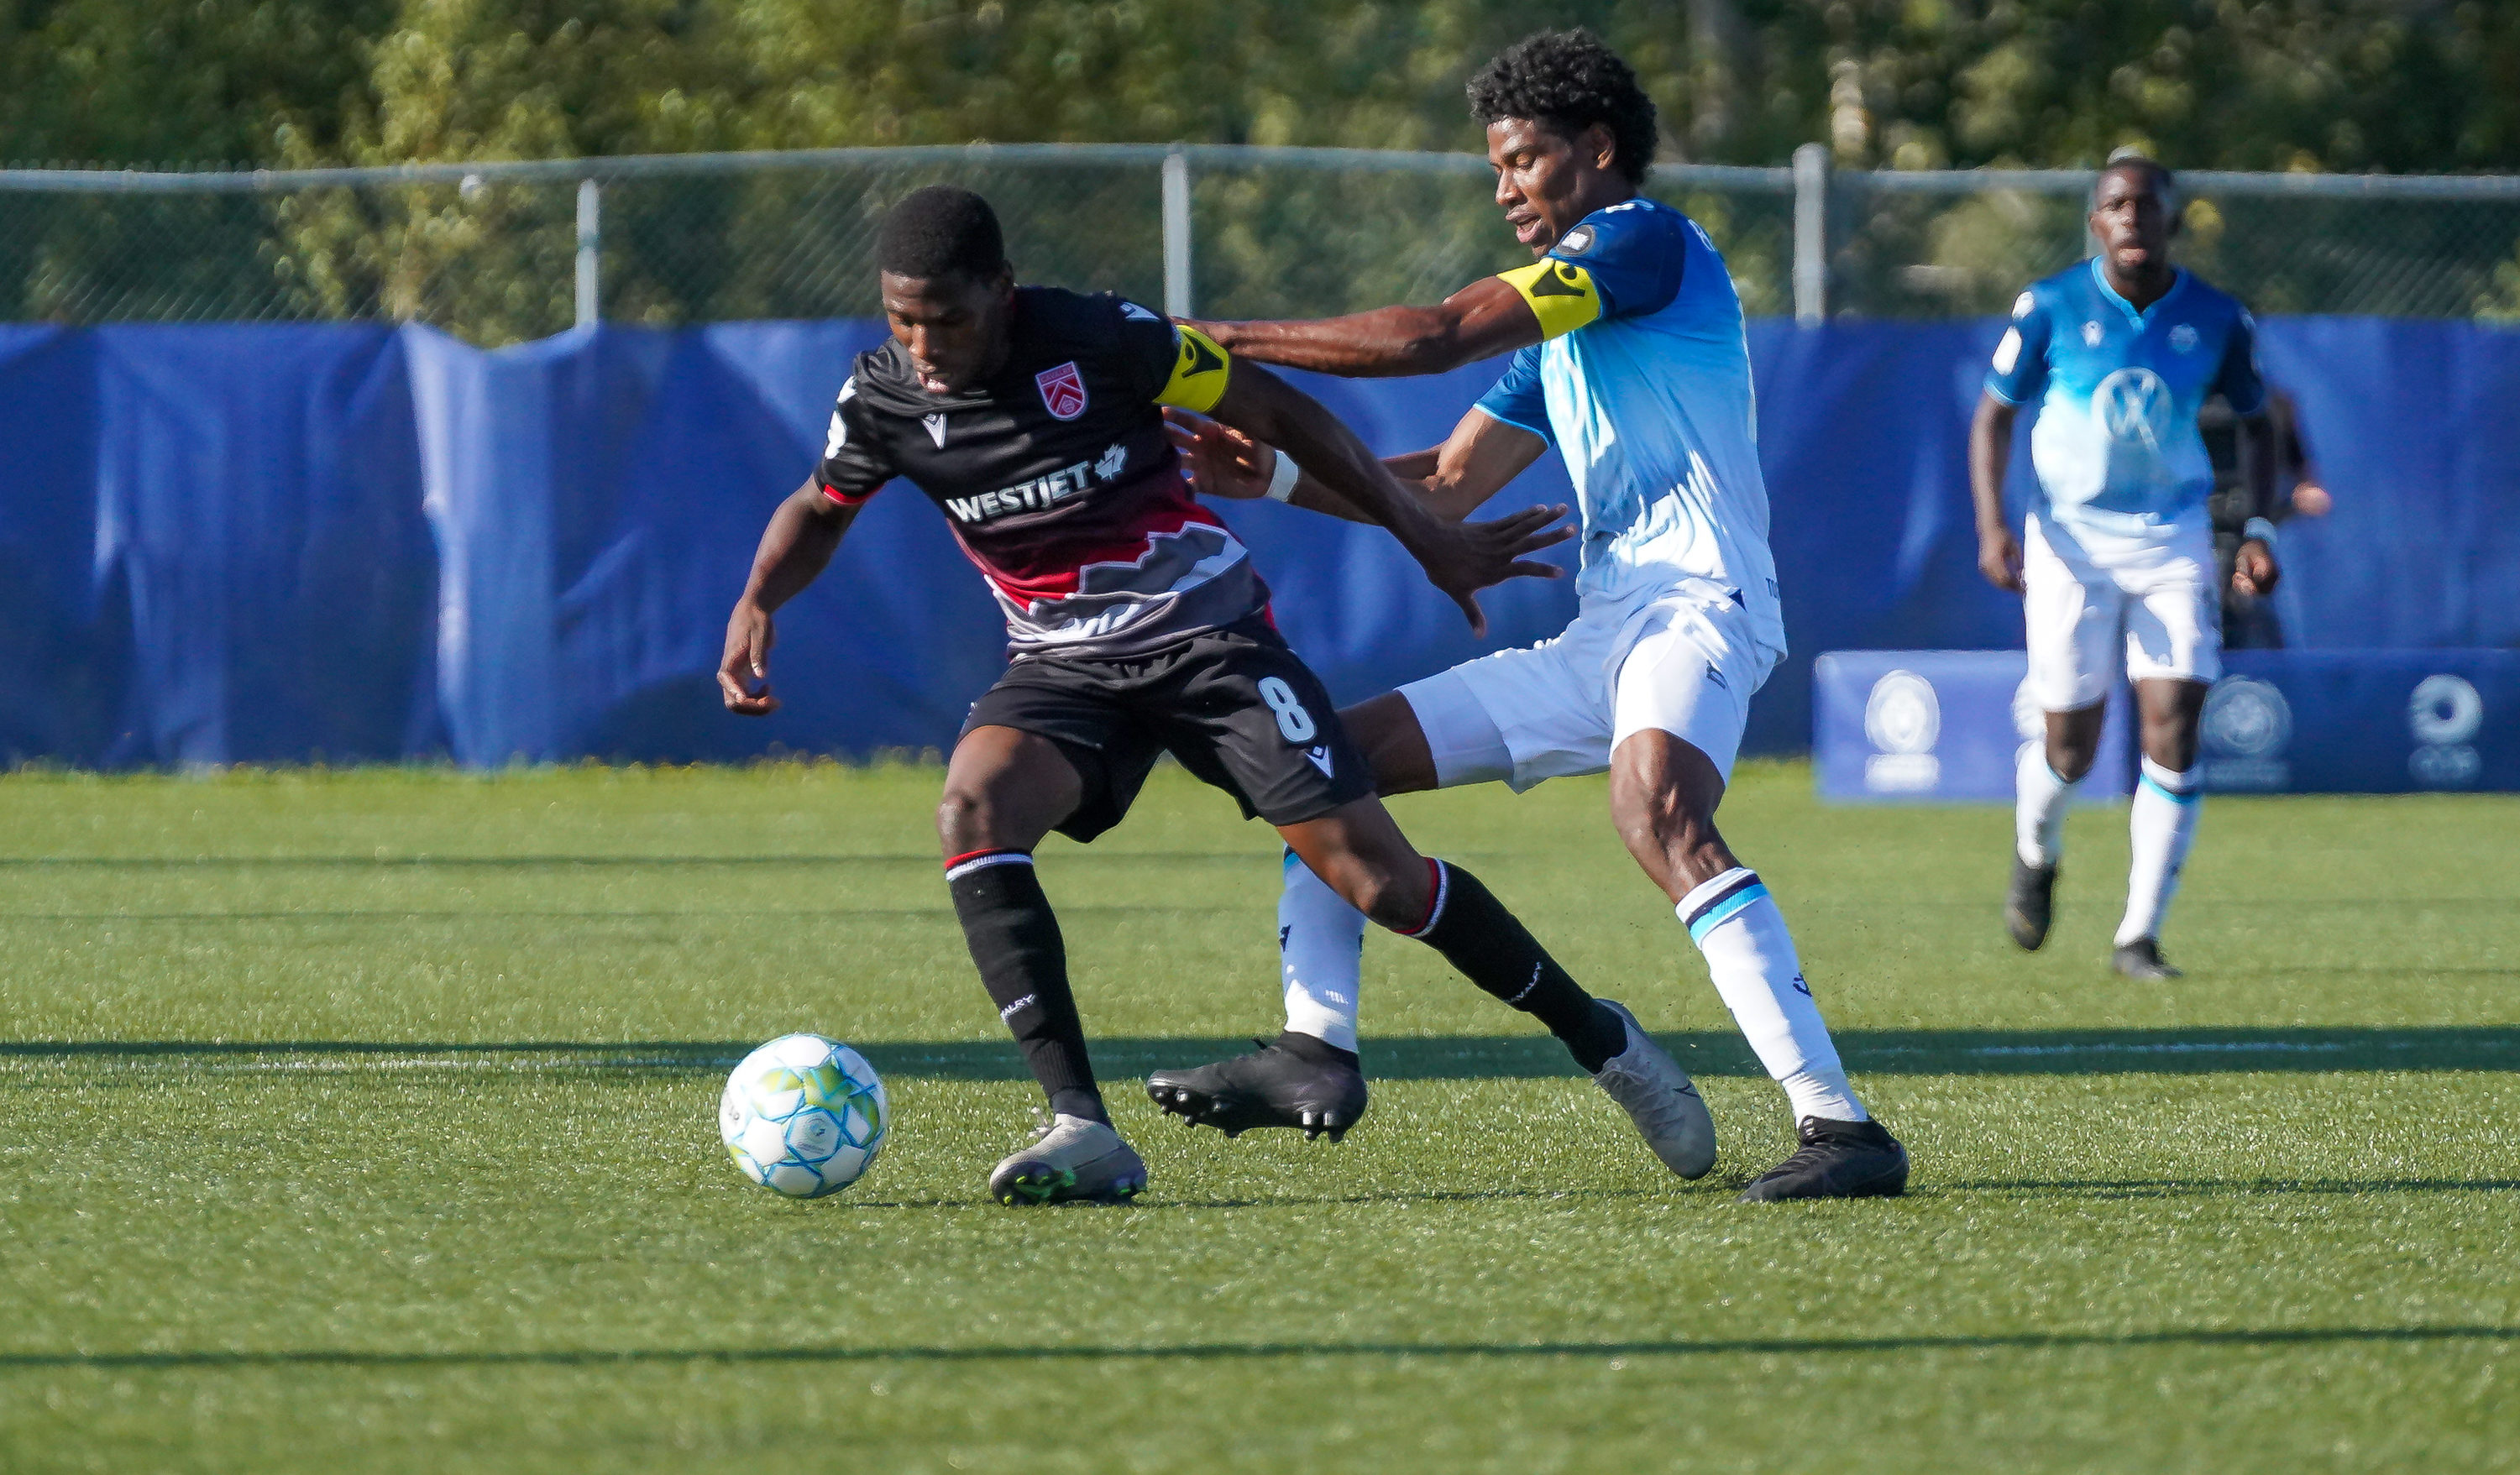 Cavalry FC's Elijah Adekugbe battles with Andre Rampersad of HFX Wanderers FC. (CPL/Chant Photography)